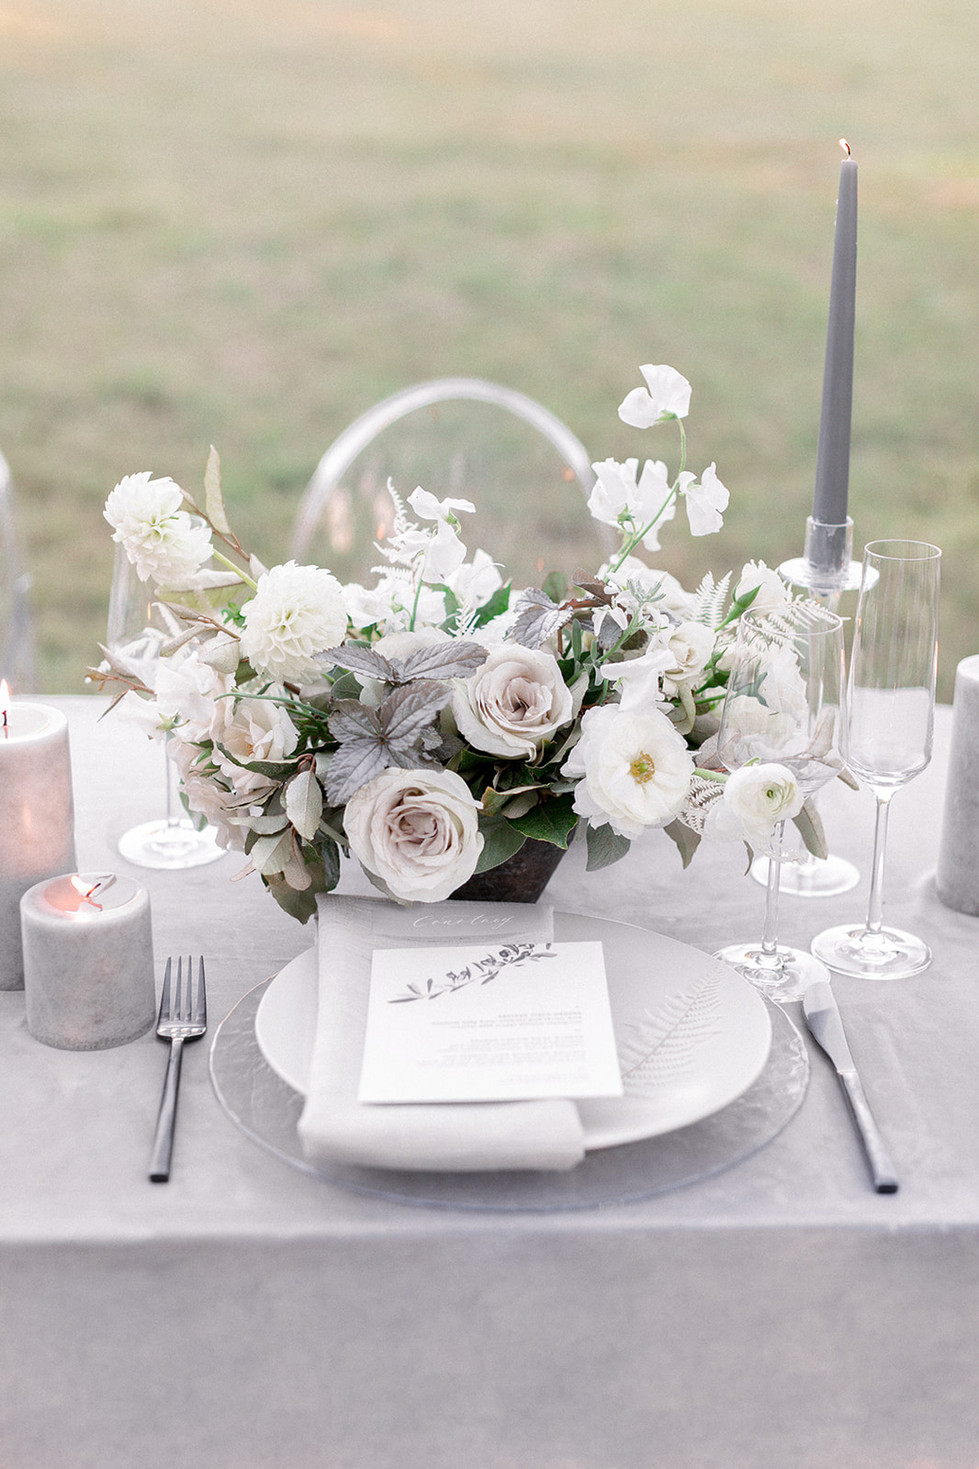 White and dove grey wedding table details. Photo: Sarah Brooke